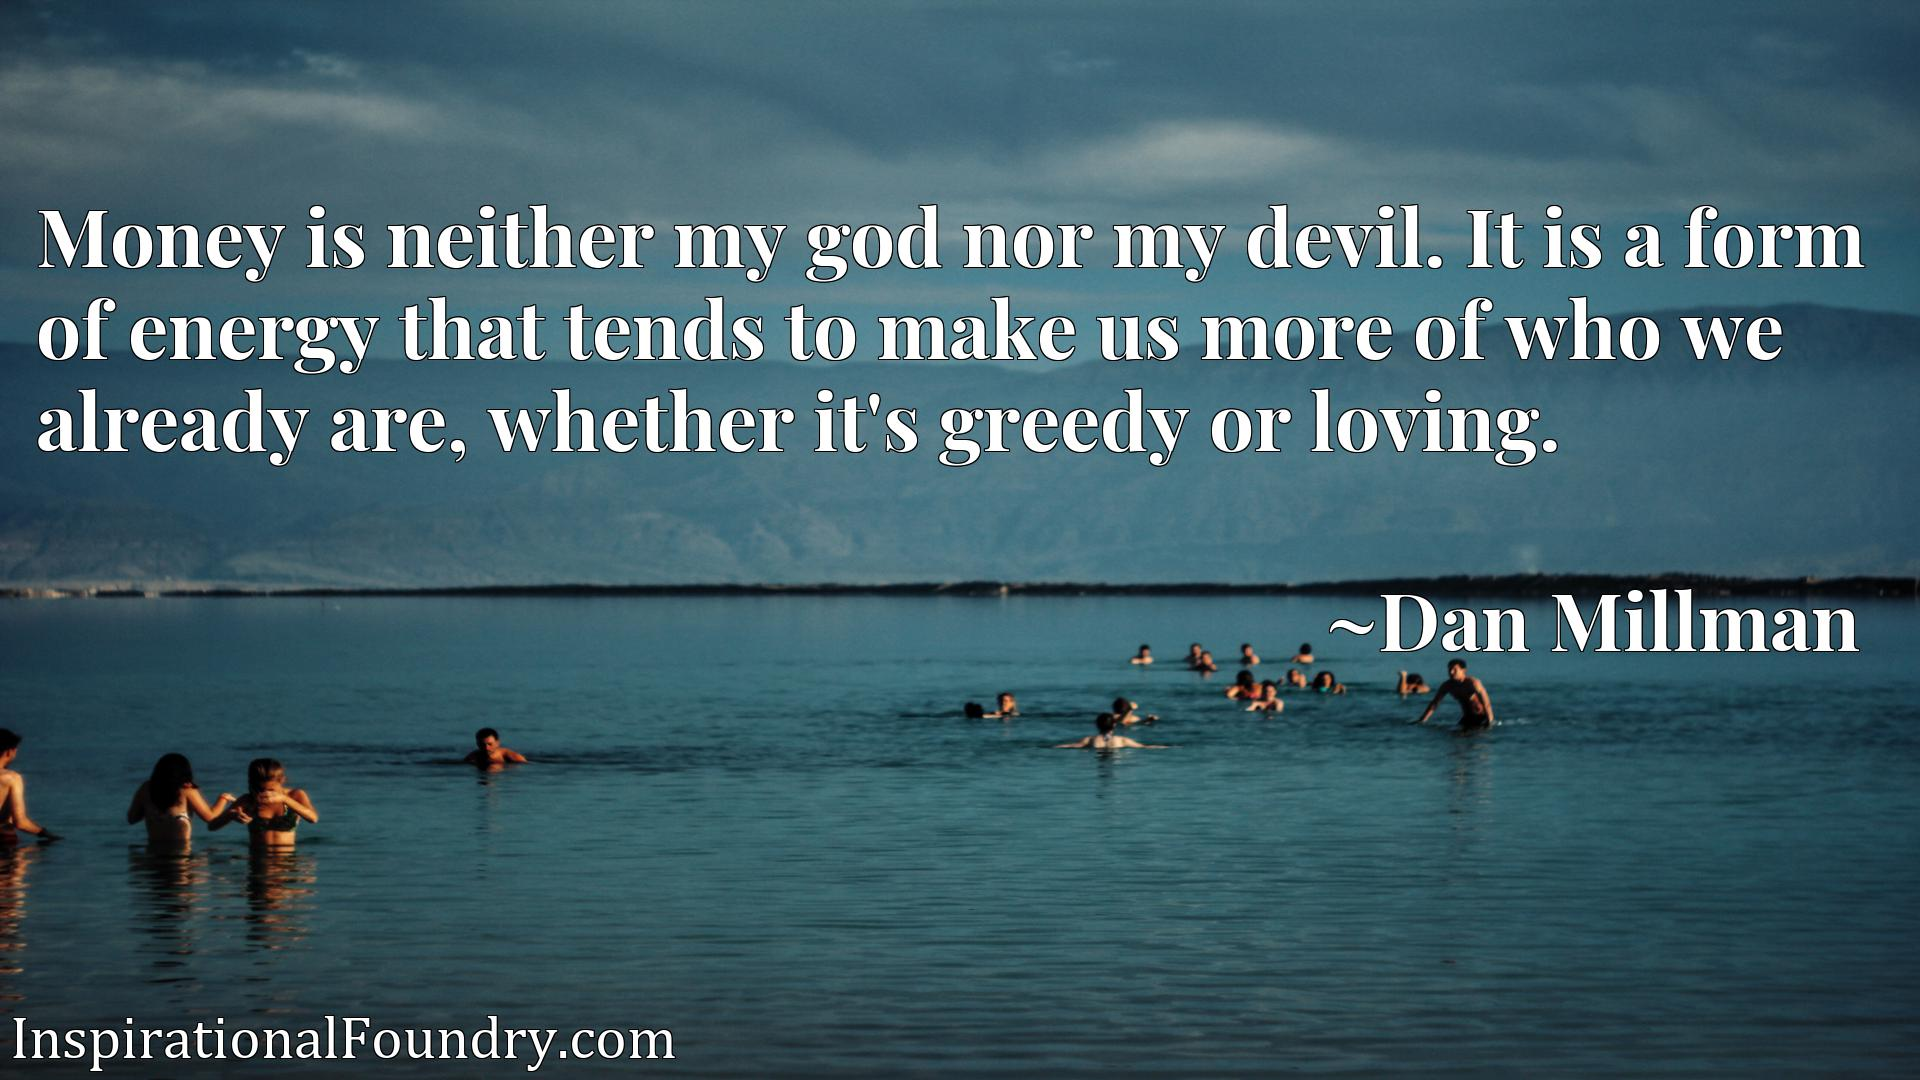 Quote Picture :Money is neither my god nor my devil. It is a form of energy that tends to make us more of who we already are, whether it's greedy or loving.